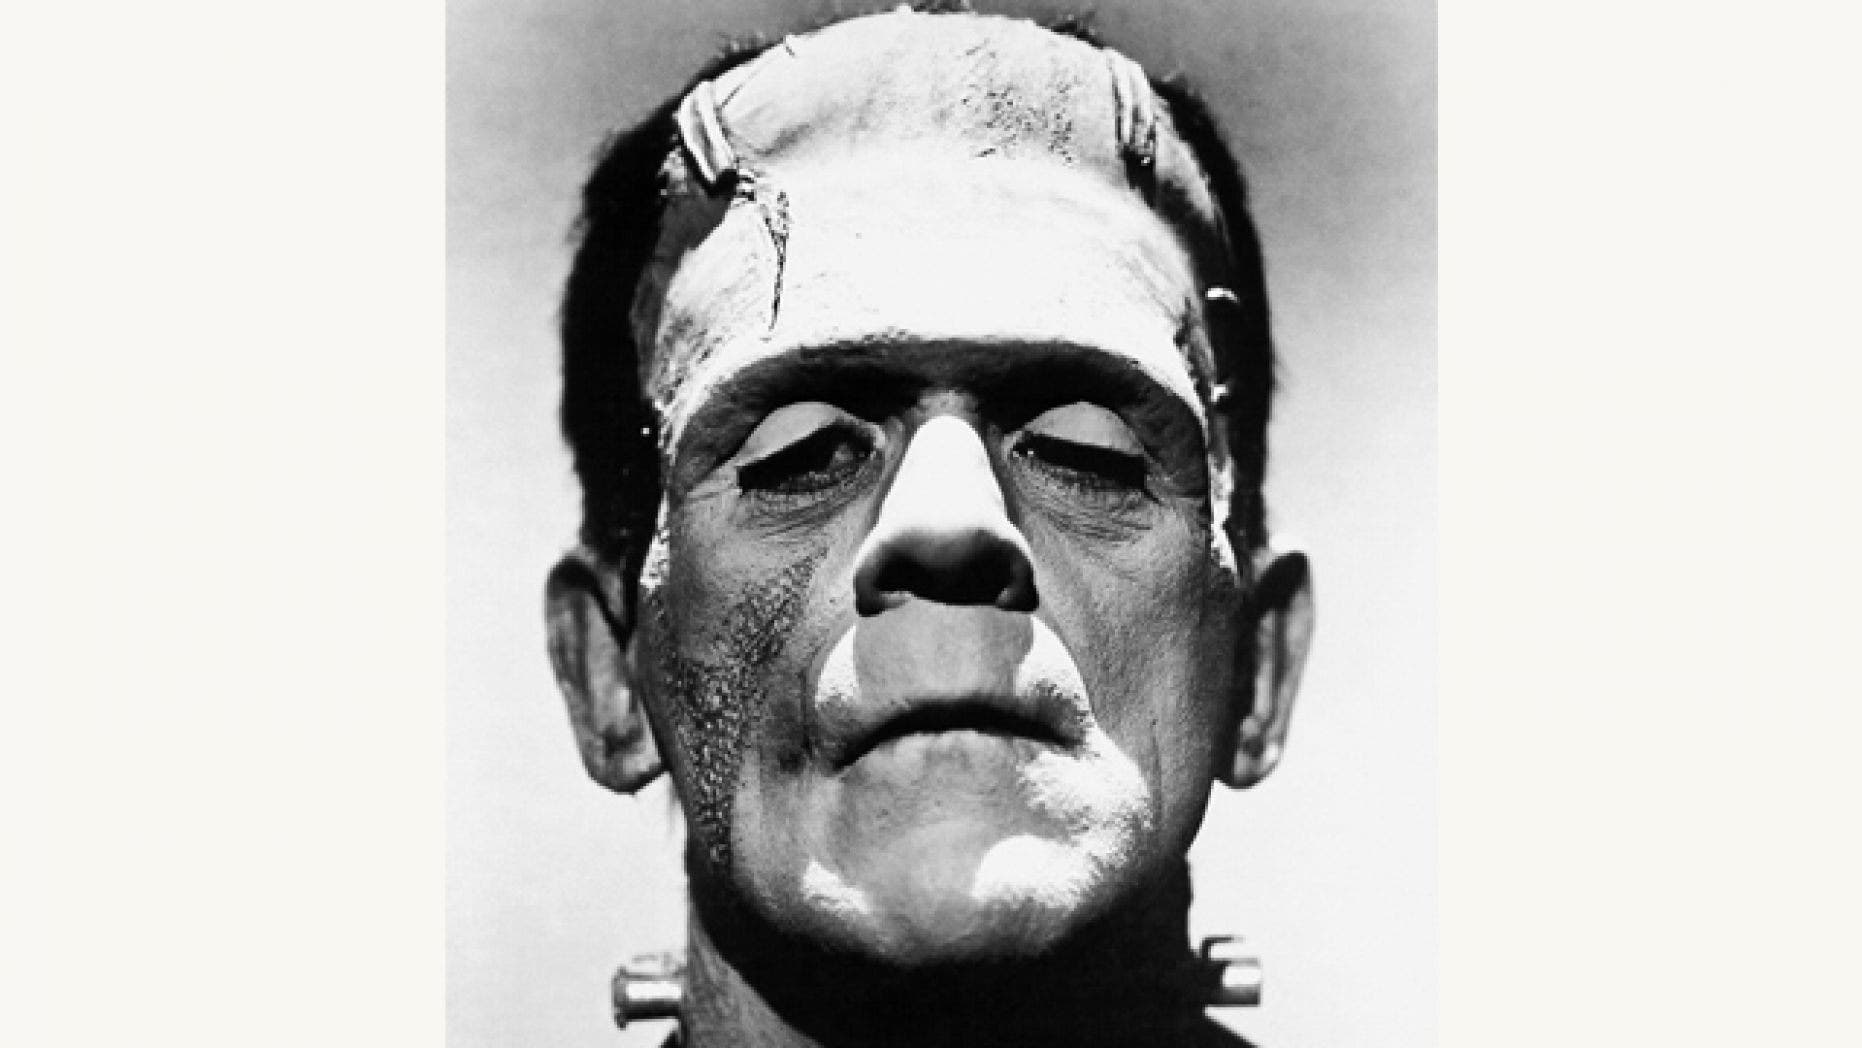 This Day in History: Nov. 21 - Frankenstein headshot